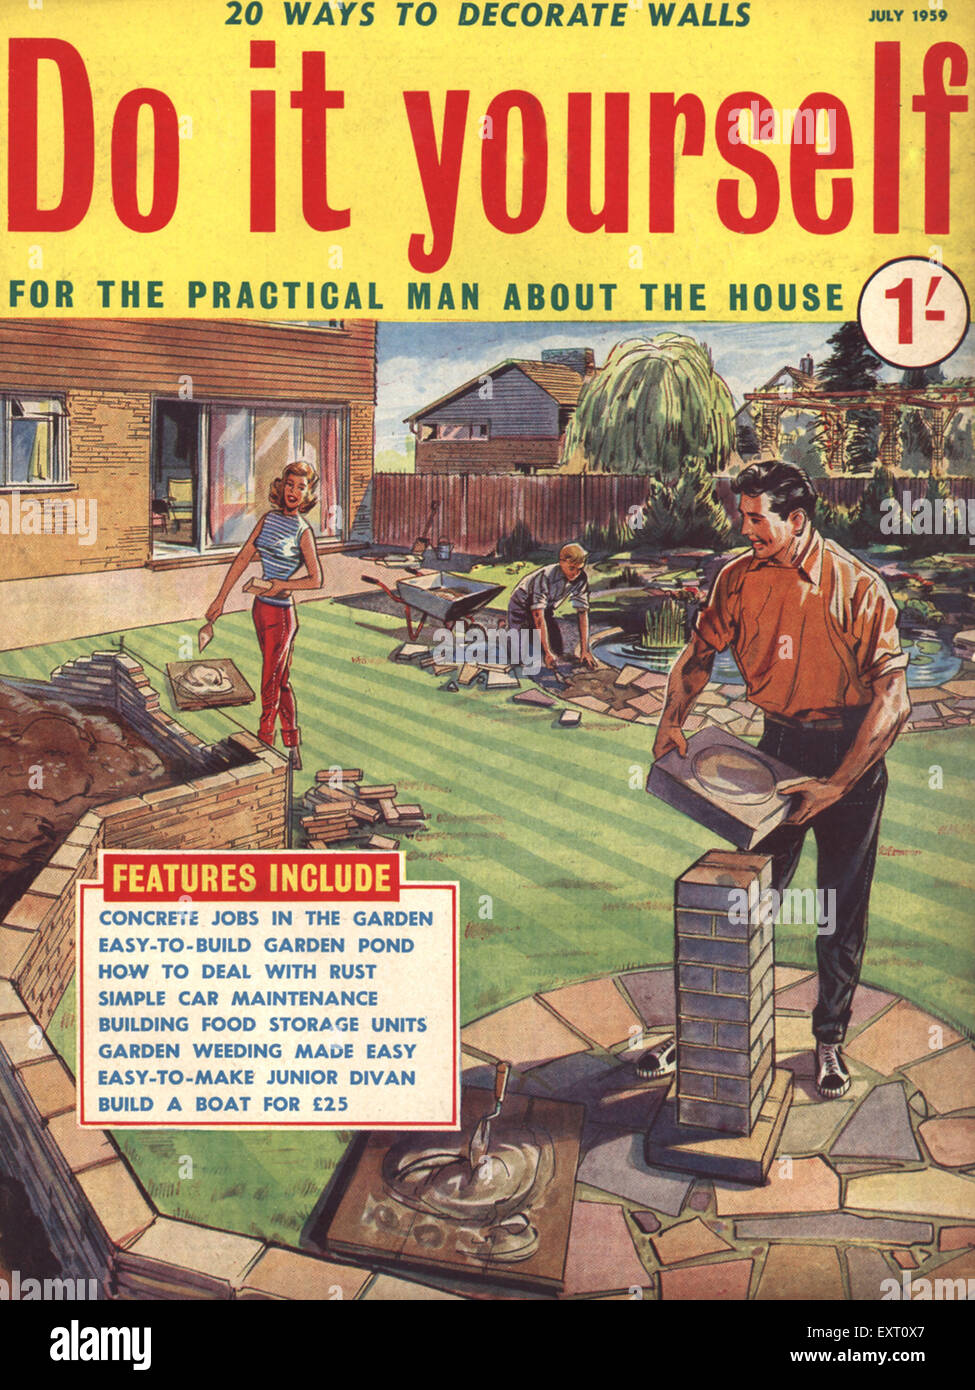 1950s uk do it yourself magazine cover stock photo 85350111 alamy 1950s uk do it yourself magazine cover solutioingenieria Gallery